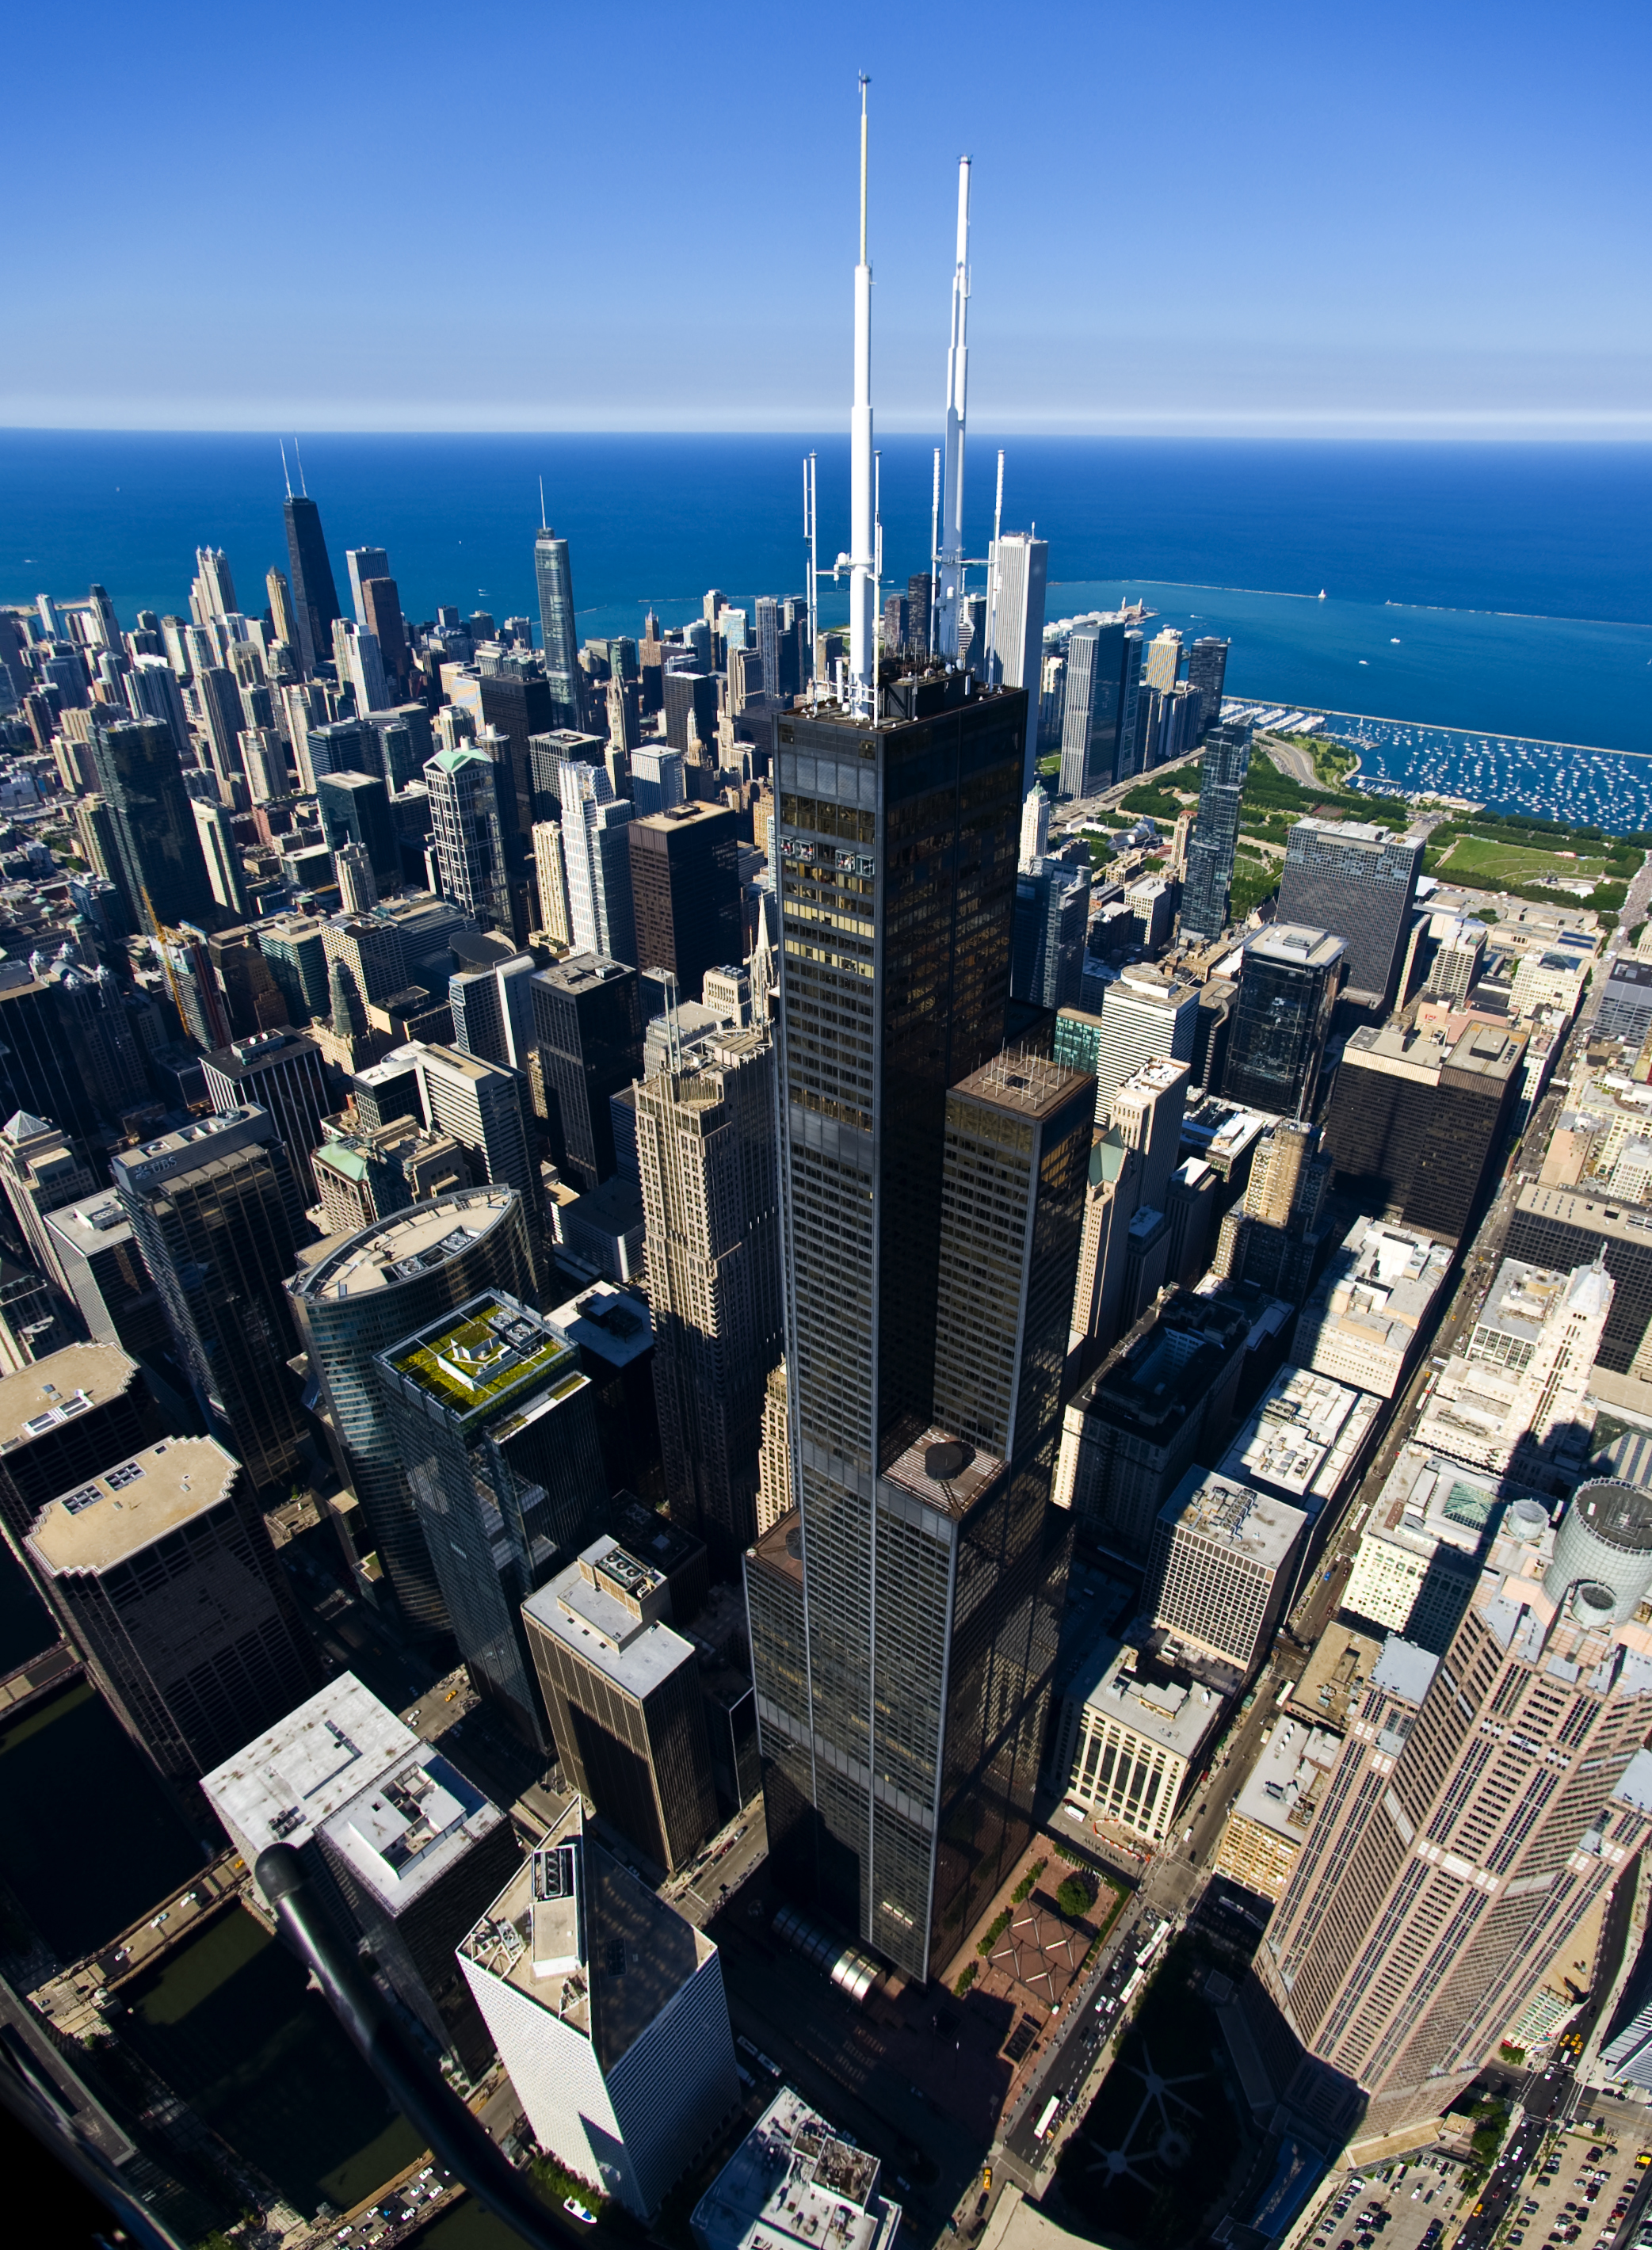 The Willis Tower, Chicago, formerly known as the Sears Tower